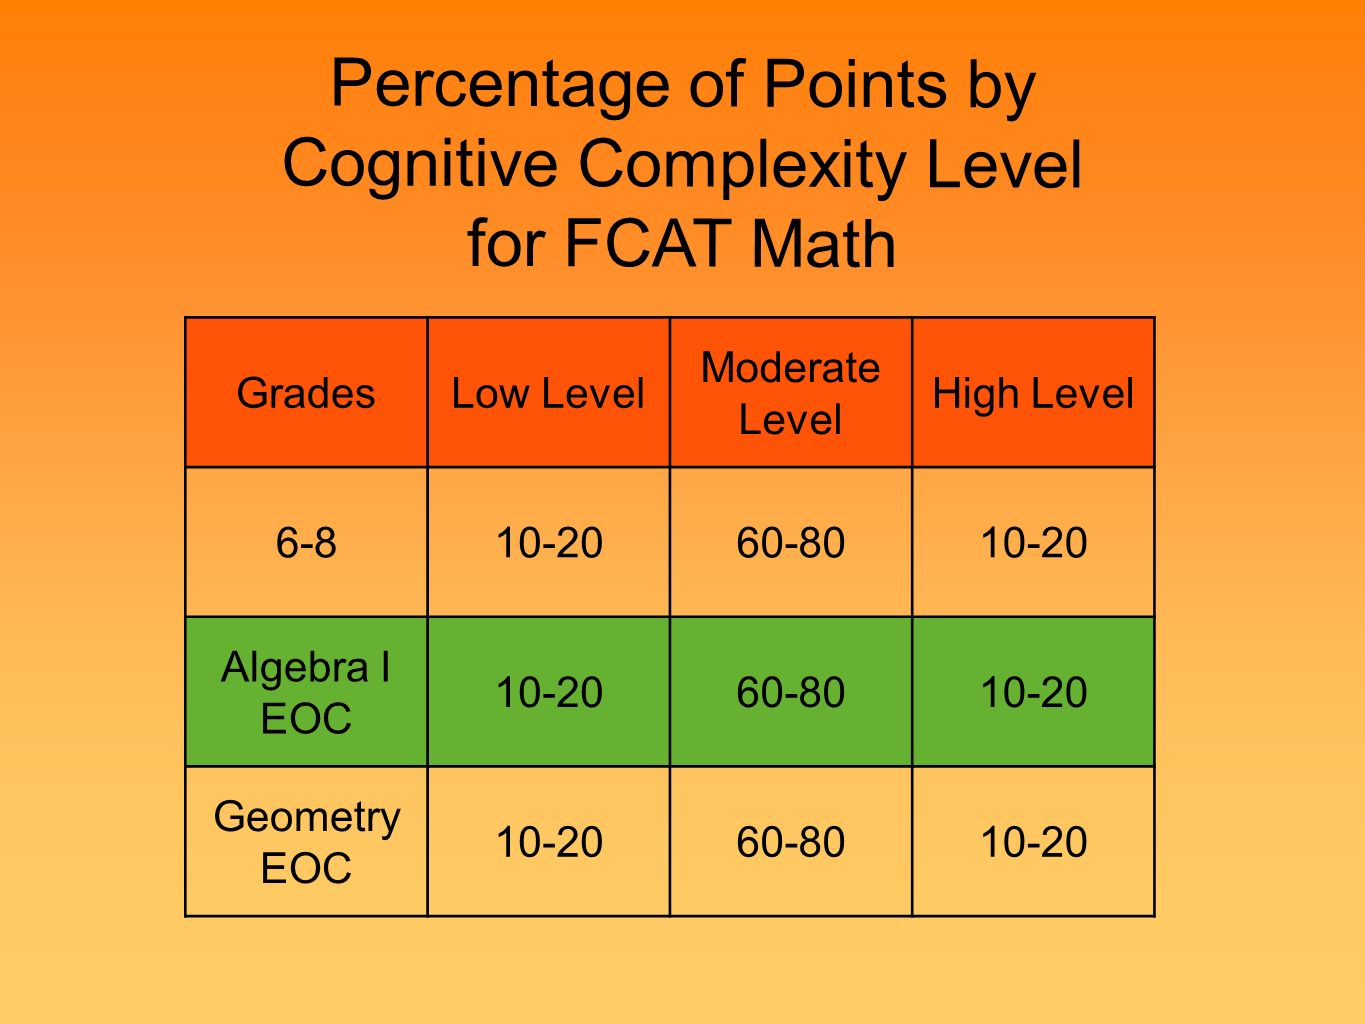 Percentage of Points by Cognitive Complexity Level for FCAT Math Low DOK GradesLow Level Moderate Level High Level 6-810-2060-8010-20 Algebra I EOC 10-2060-8010-20 Geometry EOC 10-2060-8010-20